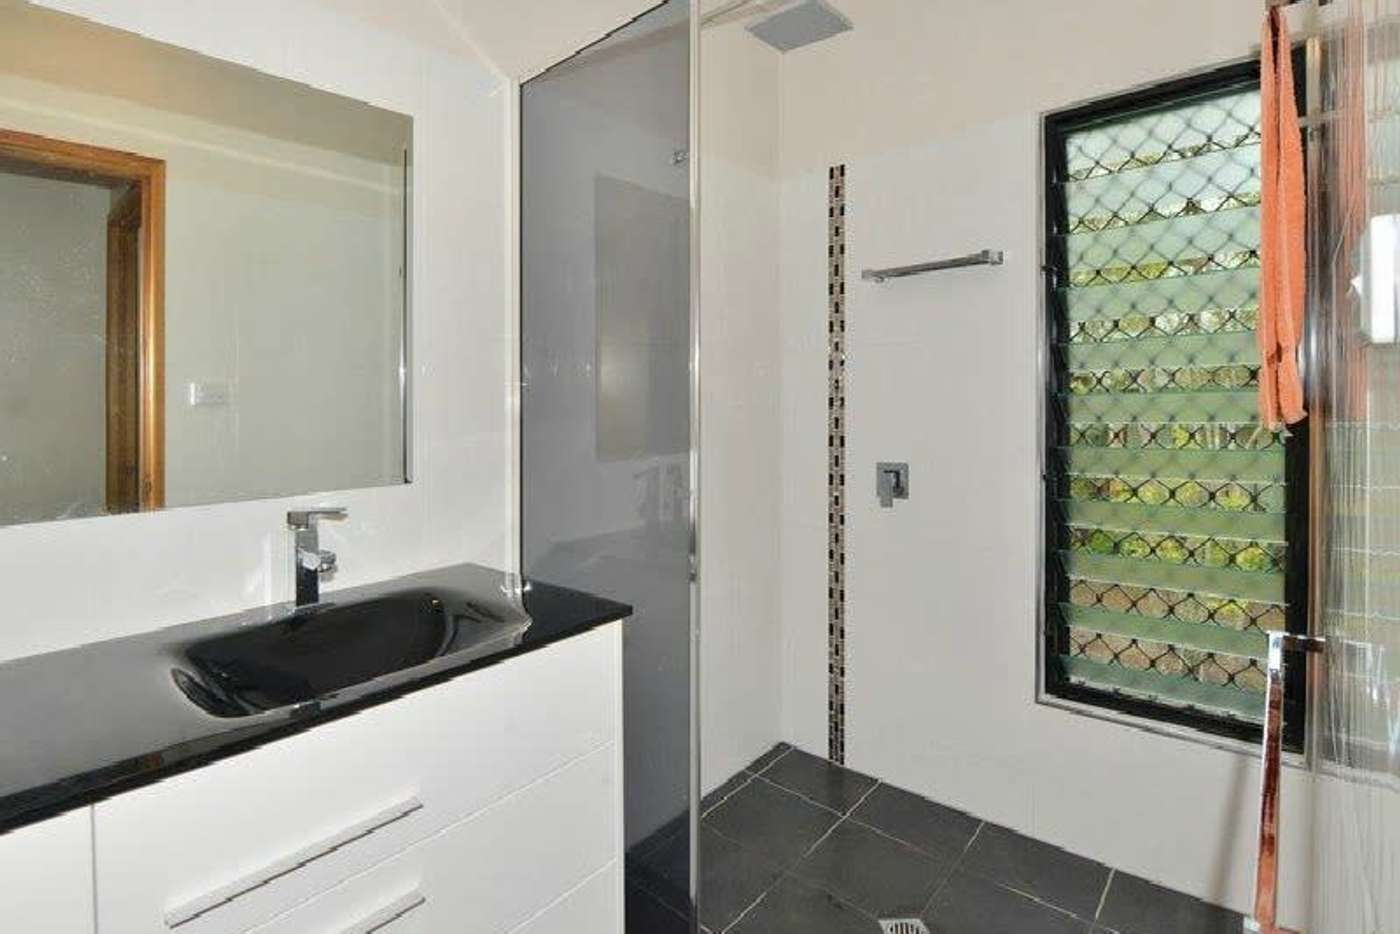 Seventh view of Homely house listing, 18 Oleander Dr, Yungaburra QLD 4884